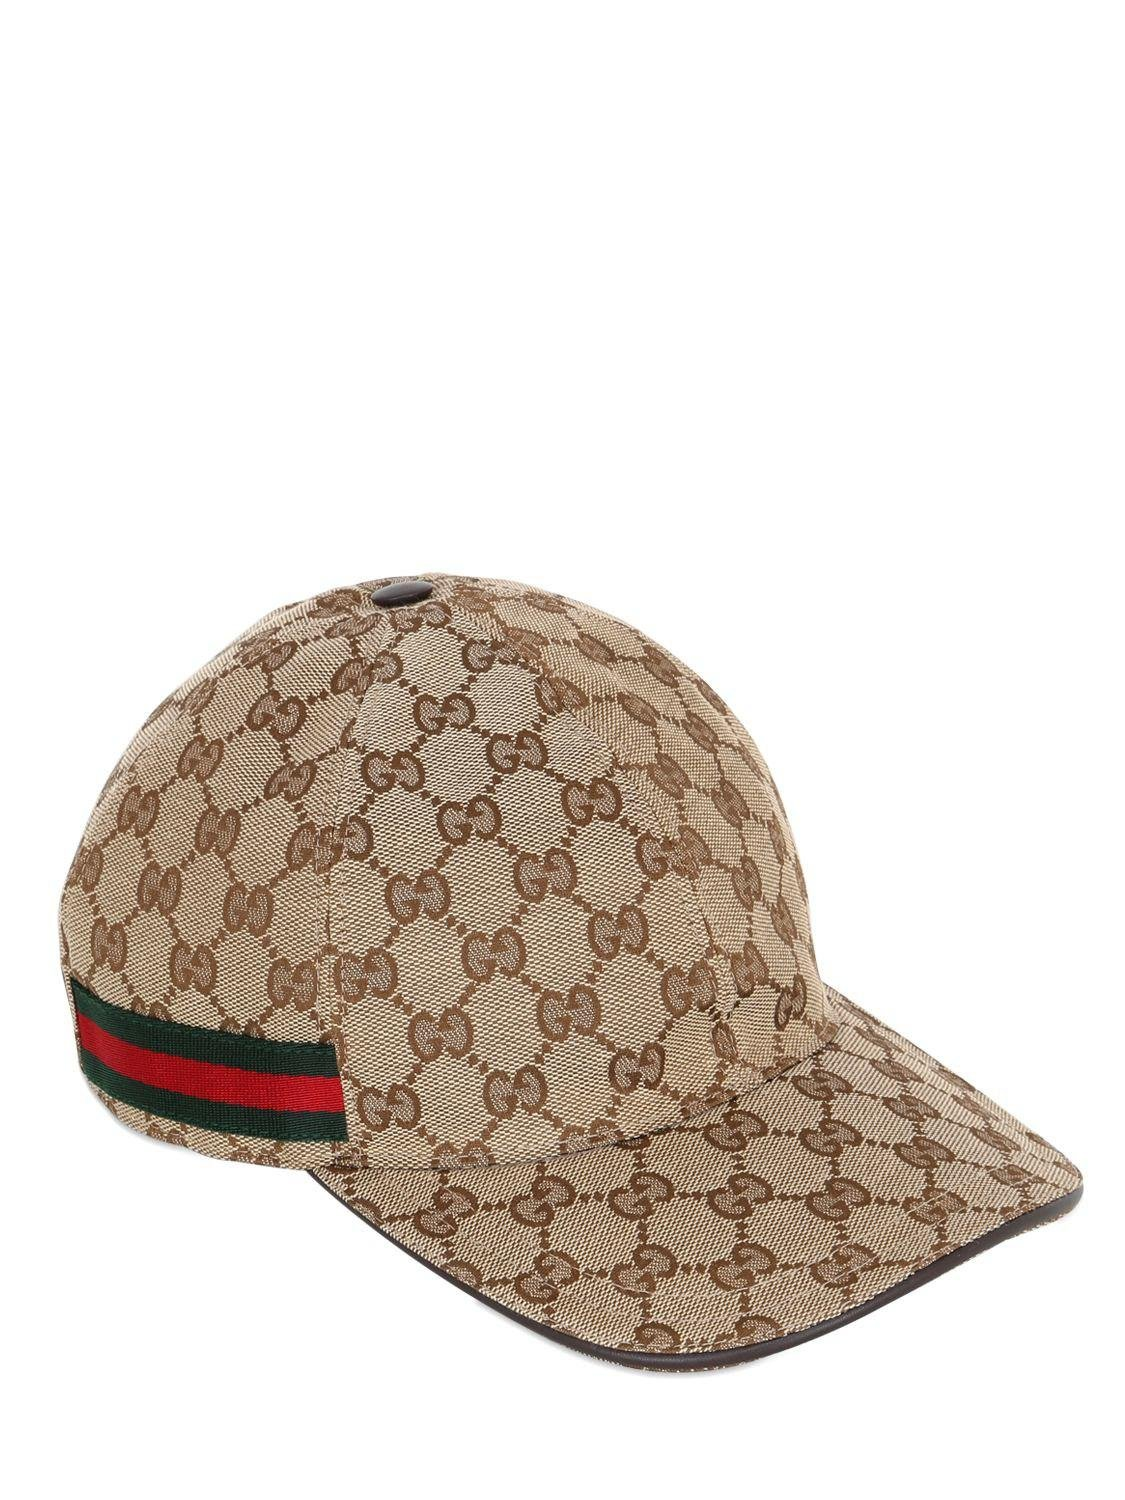 52e6b419e79 Lyst - Gucci Gg Supreme Logo Canvas Baseball Hat in Natural for Men ...